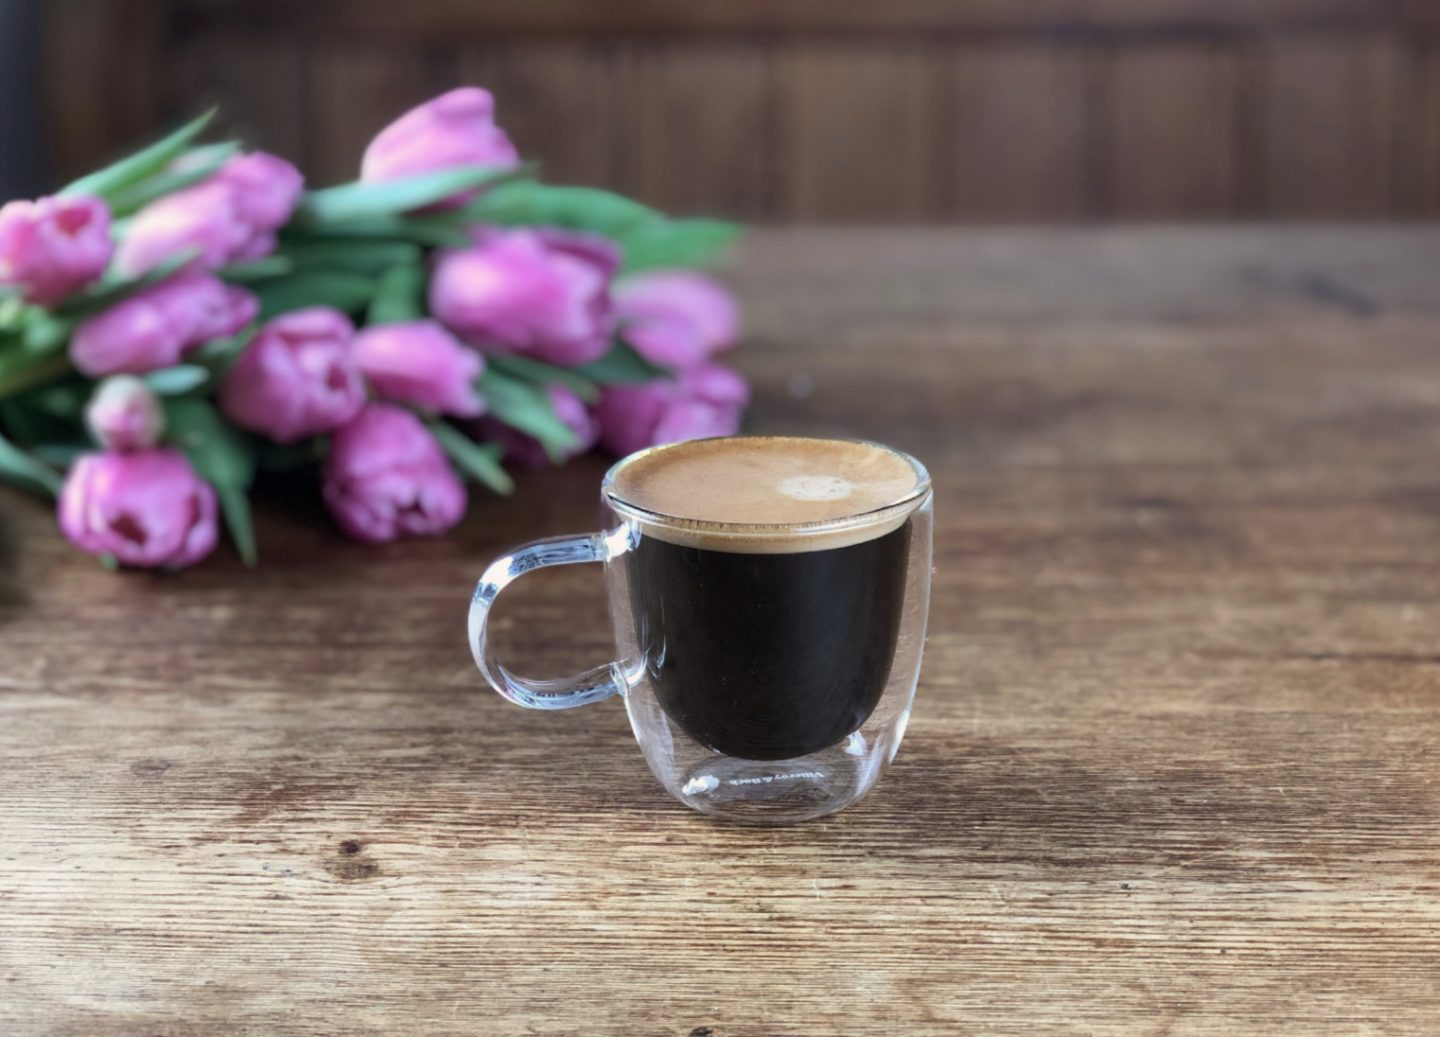 Coffee and flowers on a rustic table